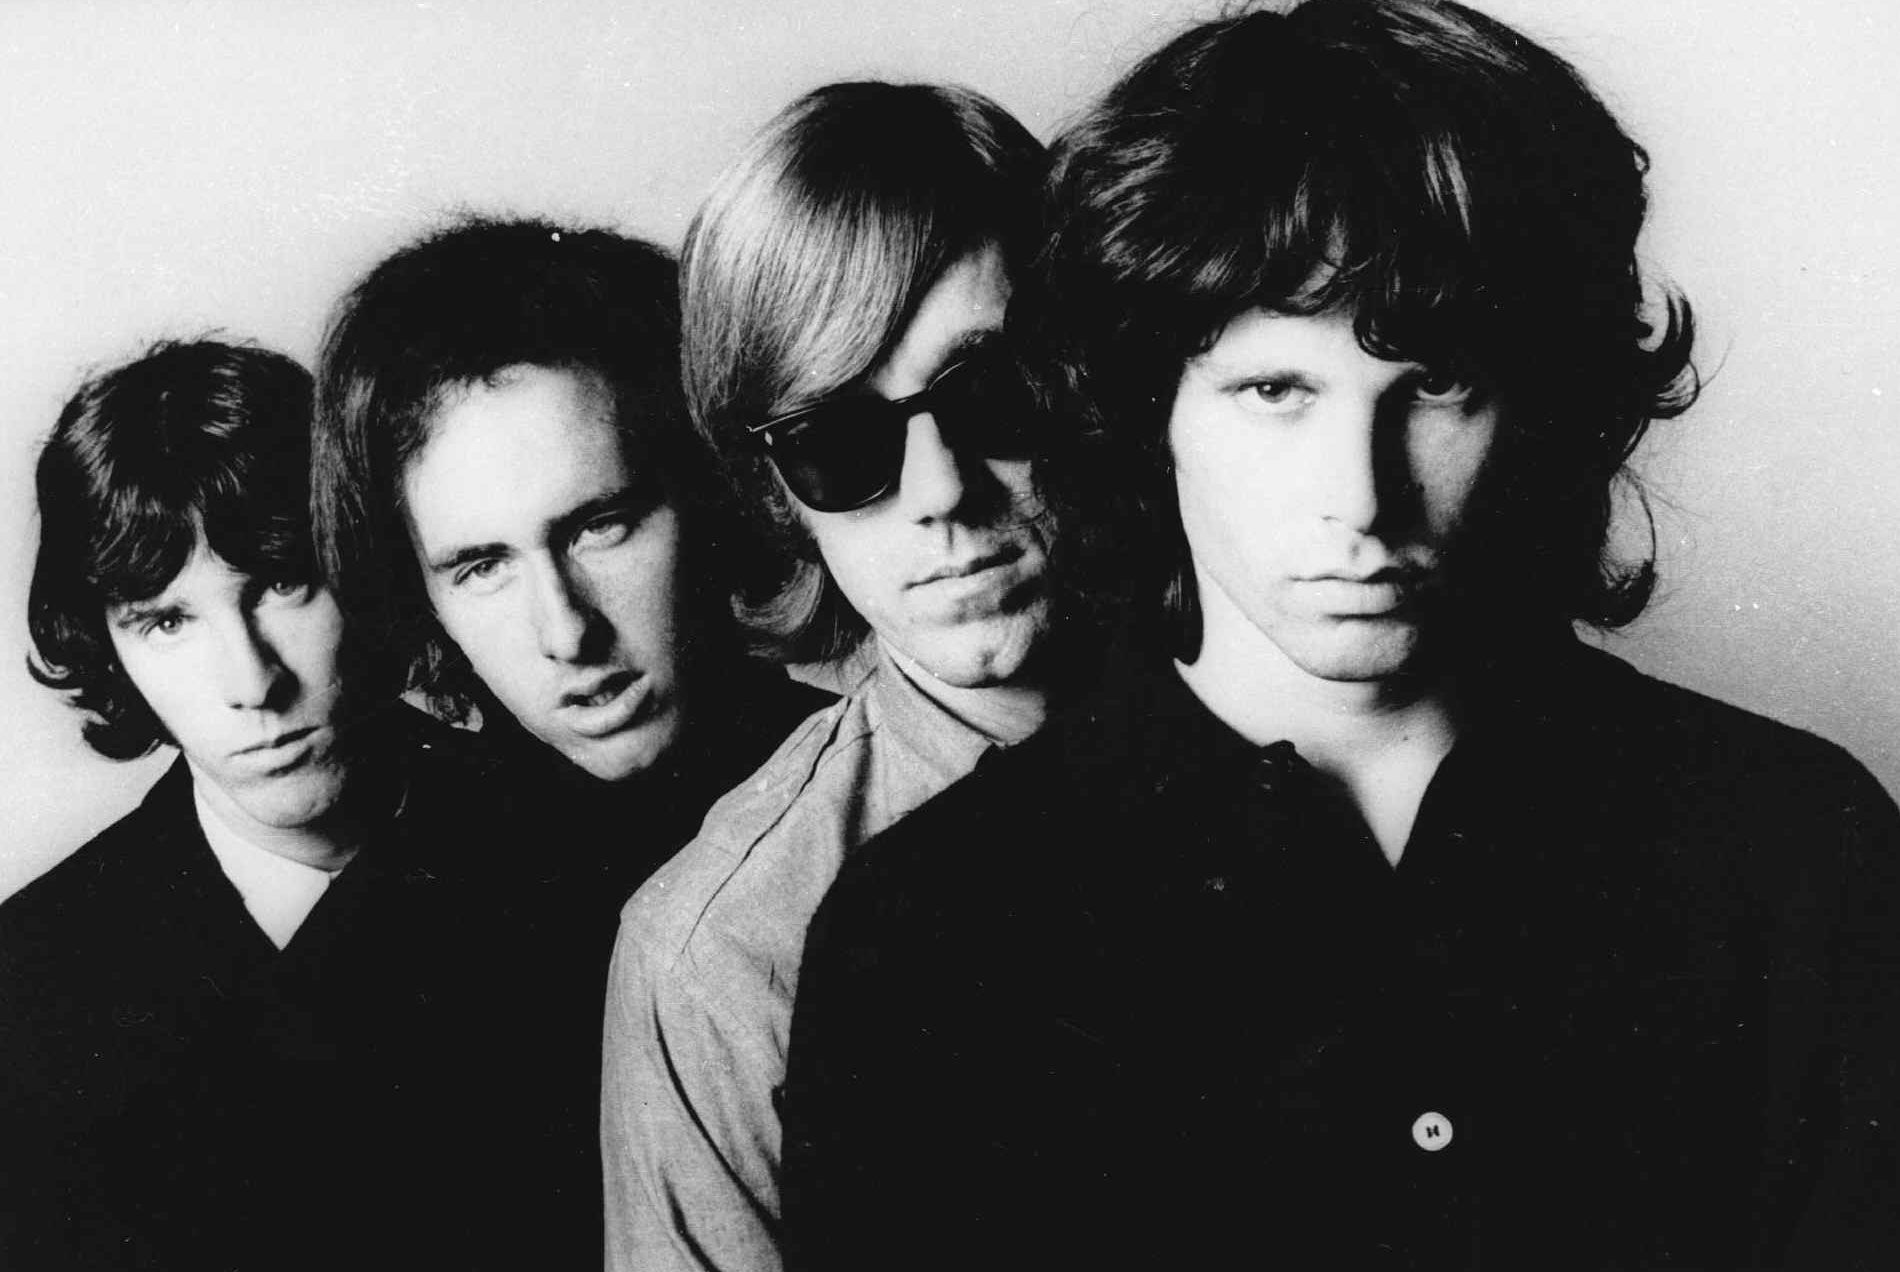 Library of Congress welcomes recordings by the Doors, Righteous Brothers